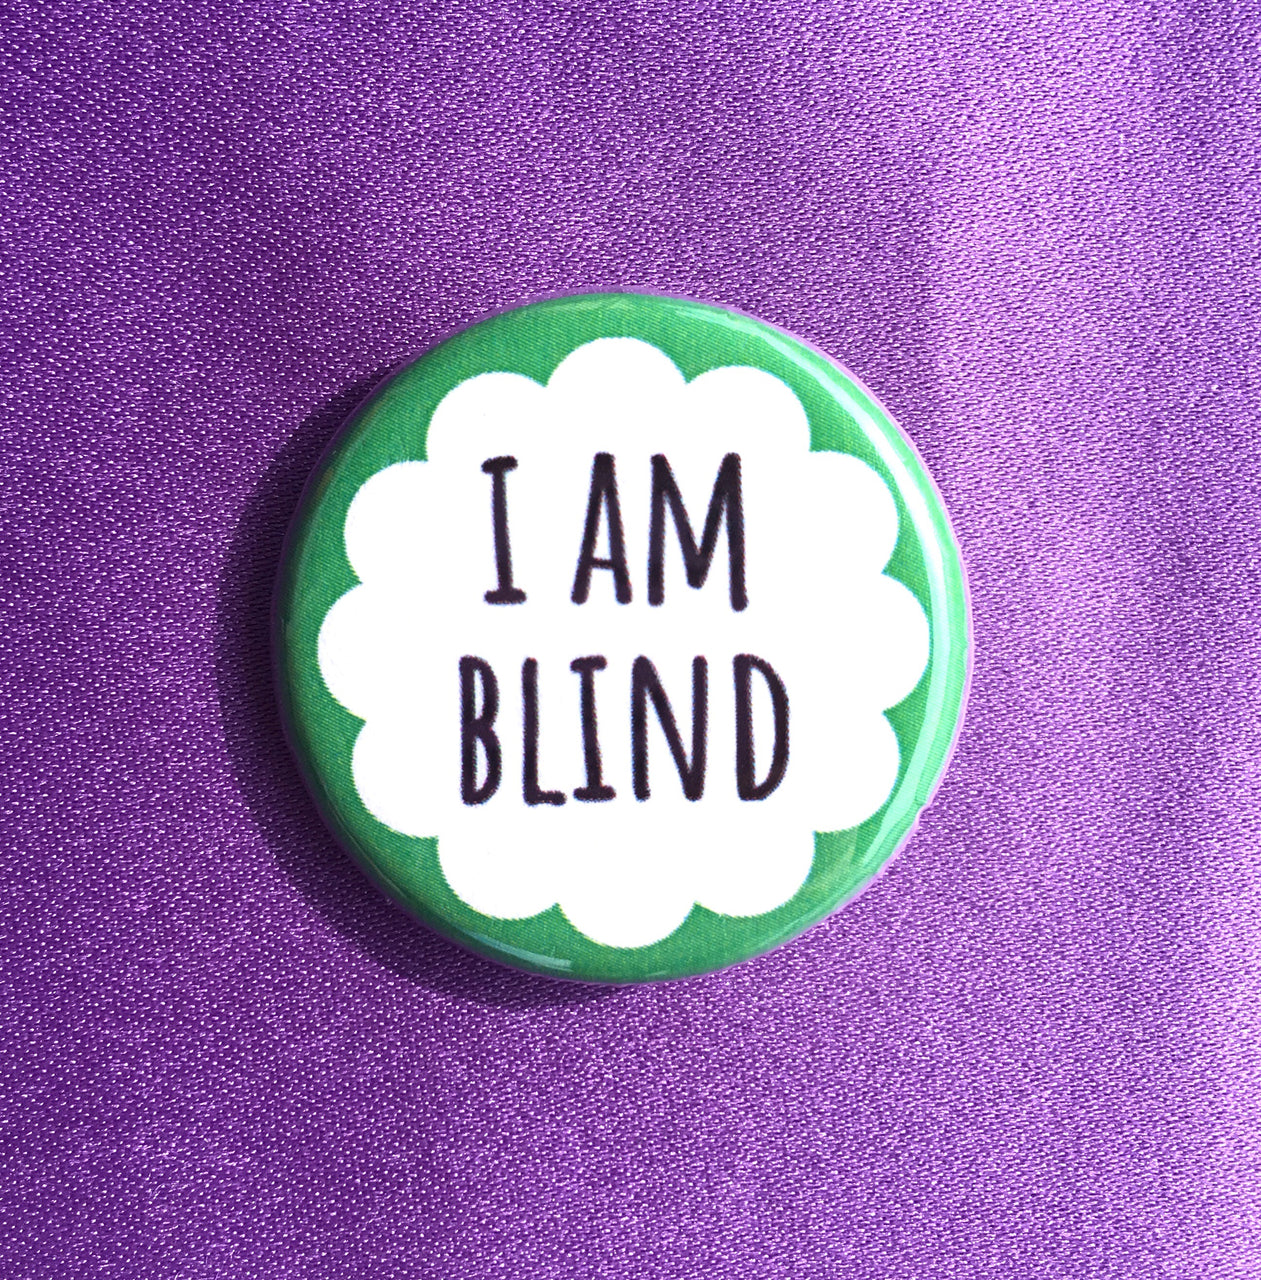 I am blind - Radical Buttons